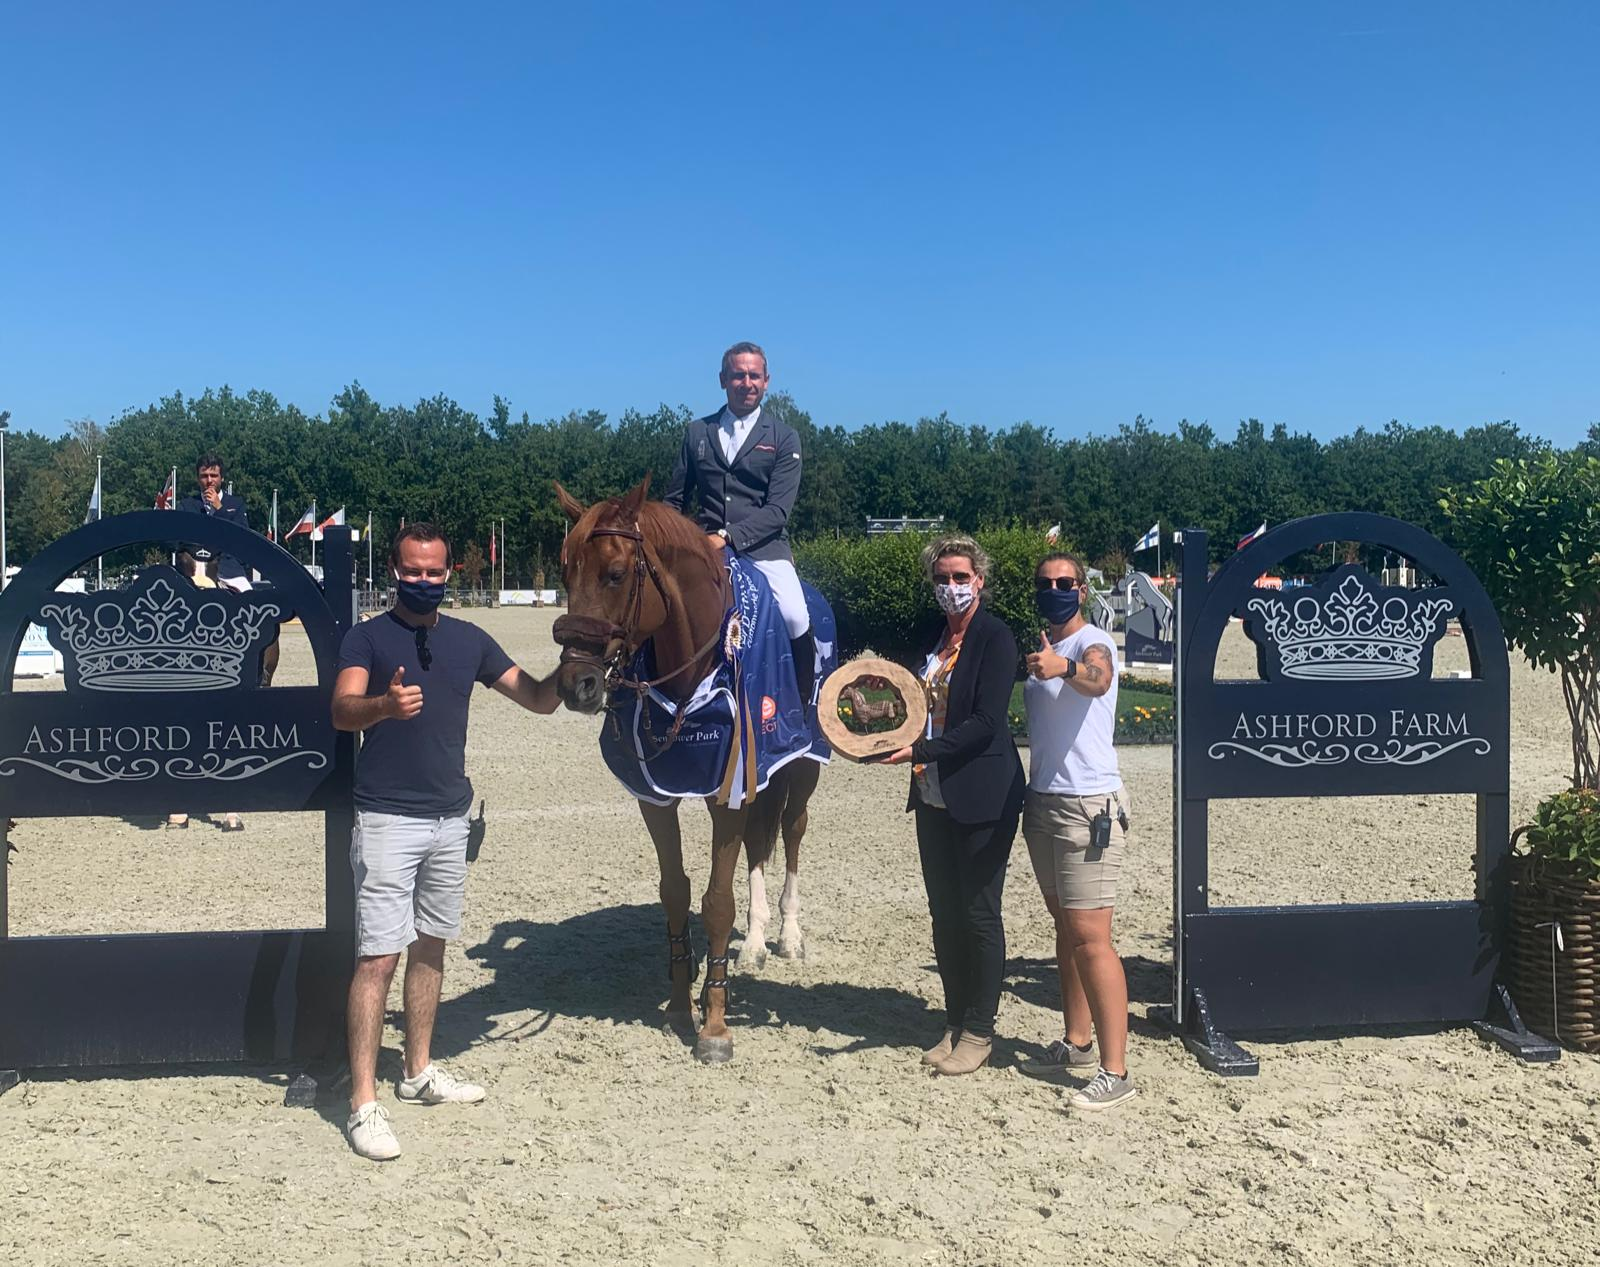 French riders dominate Longines Ranking in Sentower Park